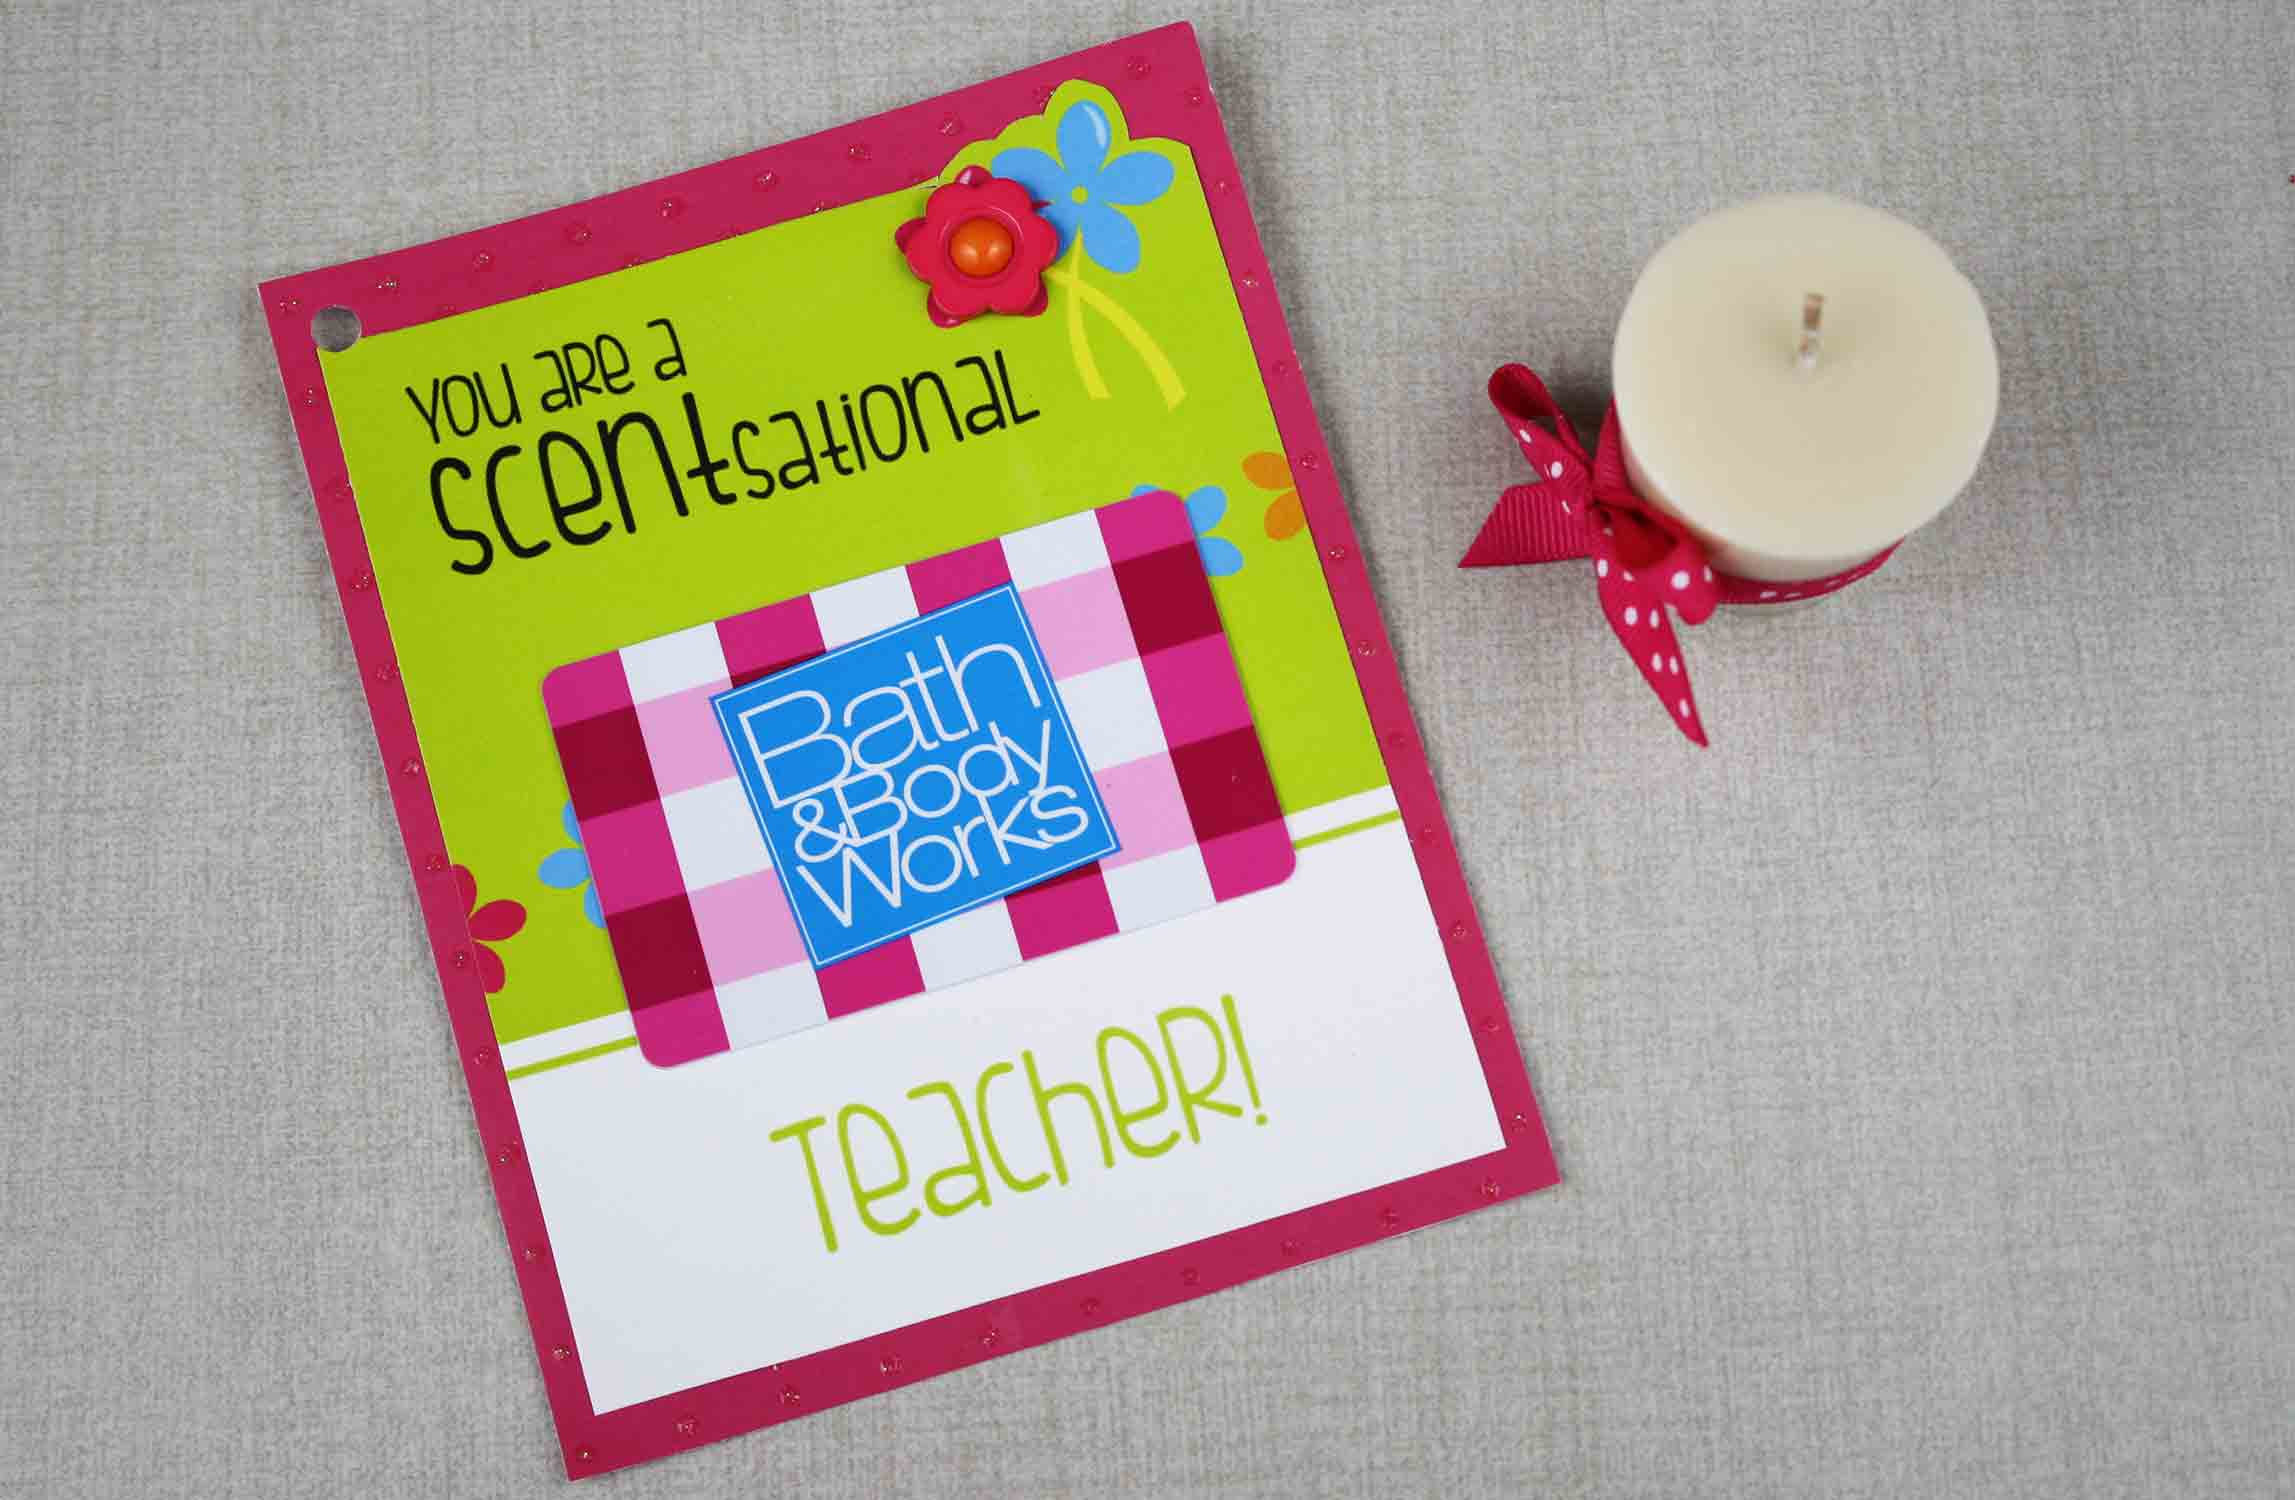 SCENTsational teacher gift card holder